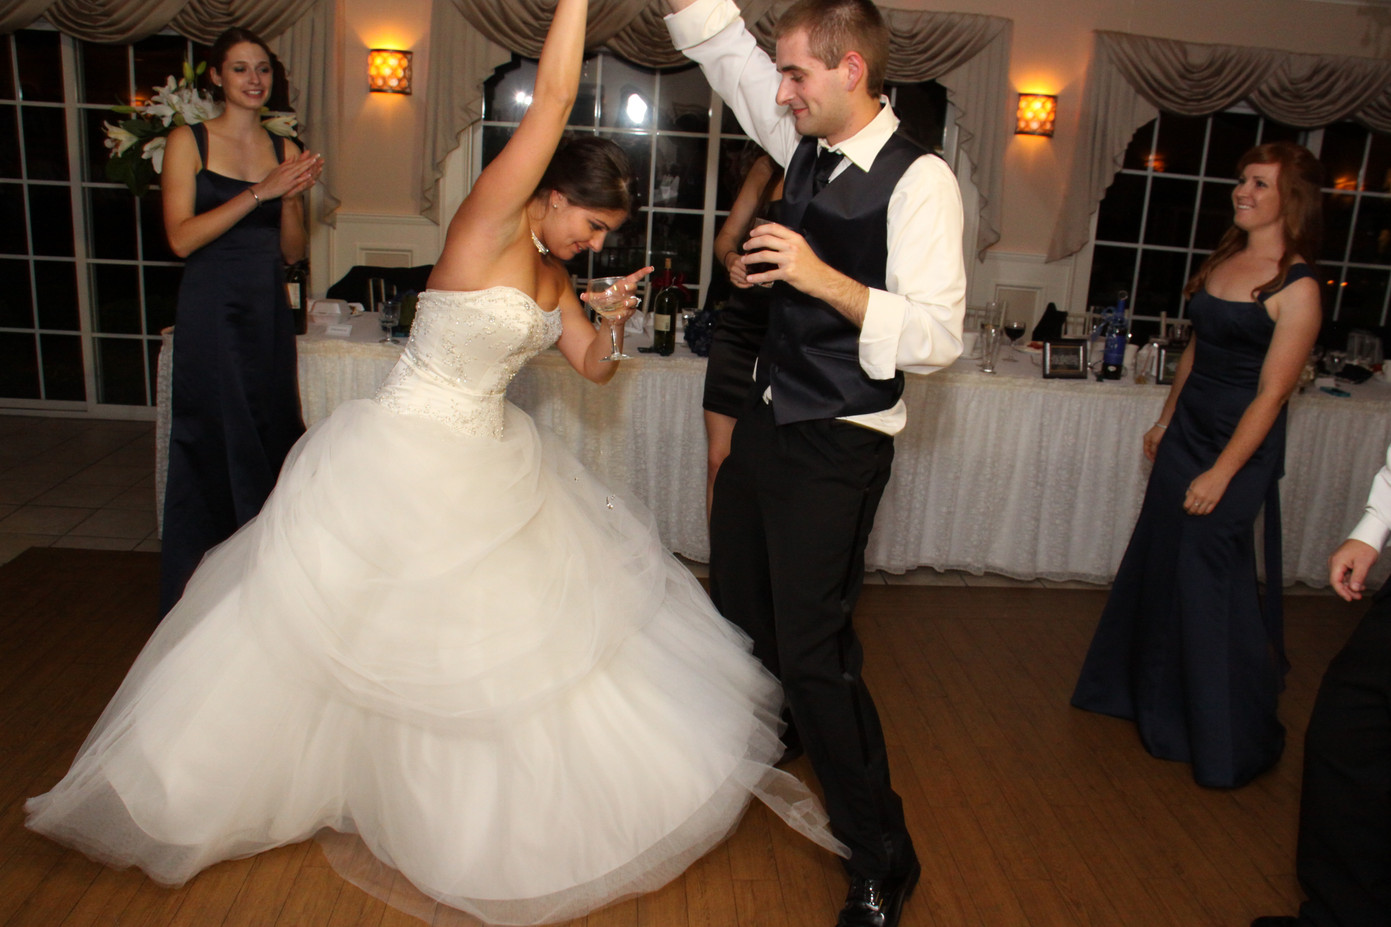 Bride-And-Groom-Sweet-Dance-At-The-Party.JPG